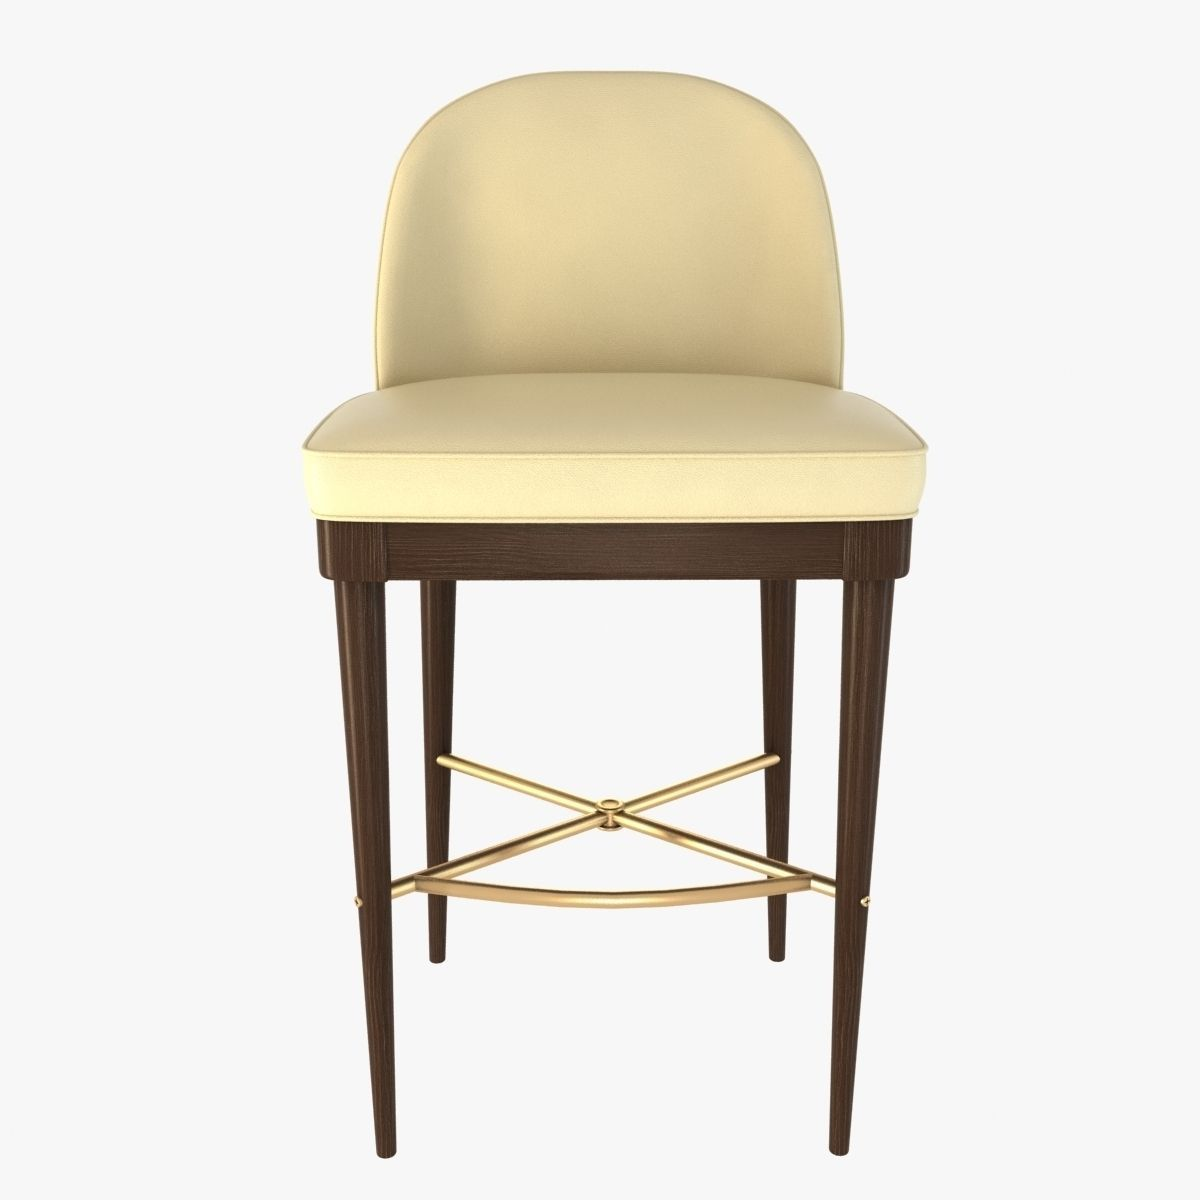 ... laurent bar stool by hickory chair furniture 3d model max obj 3ds fbx mtl 7 ...  sc 1 st  CGTrader.com & Laurent Bar Stool By Hickory Chair Furniture 3D model MAX OBJ 3DS ... islam-shia.org